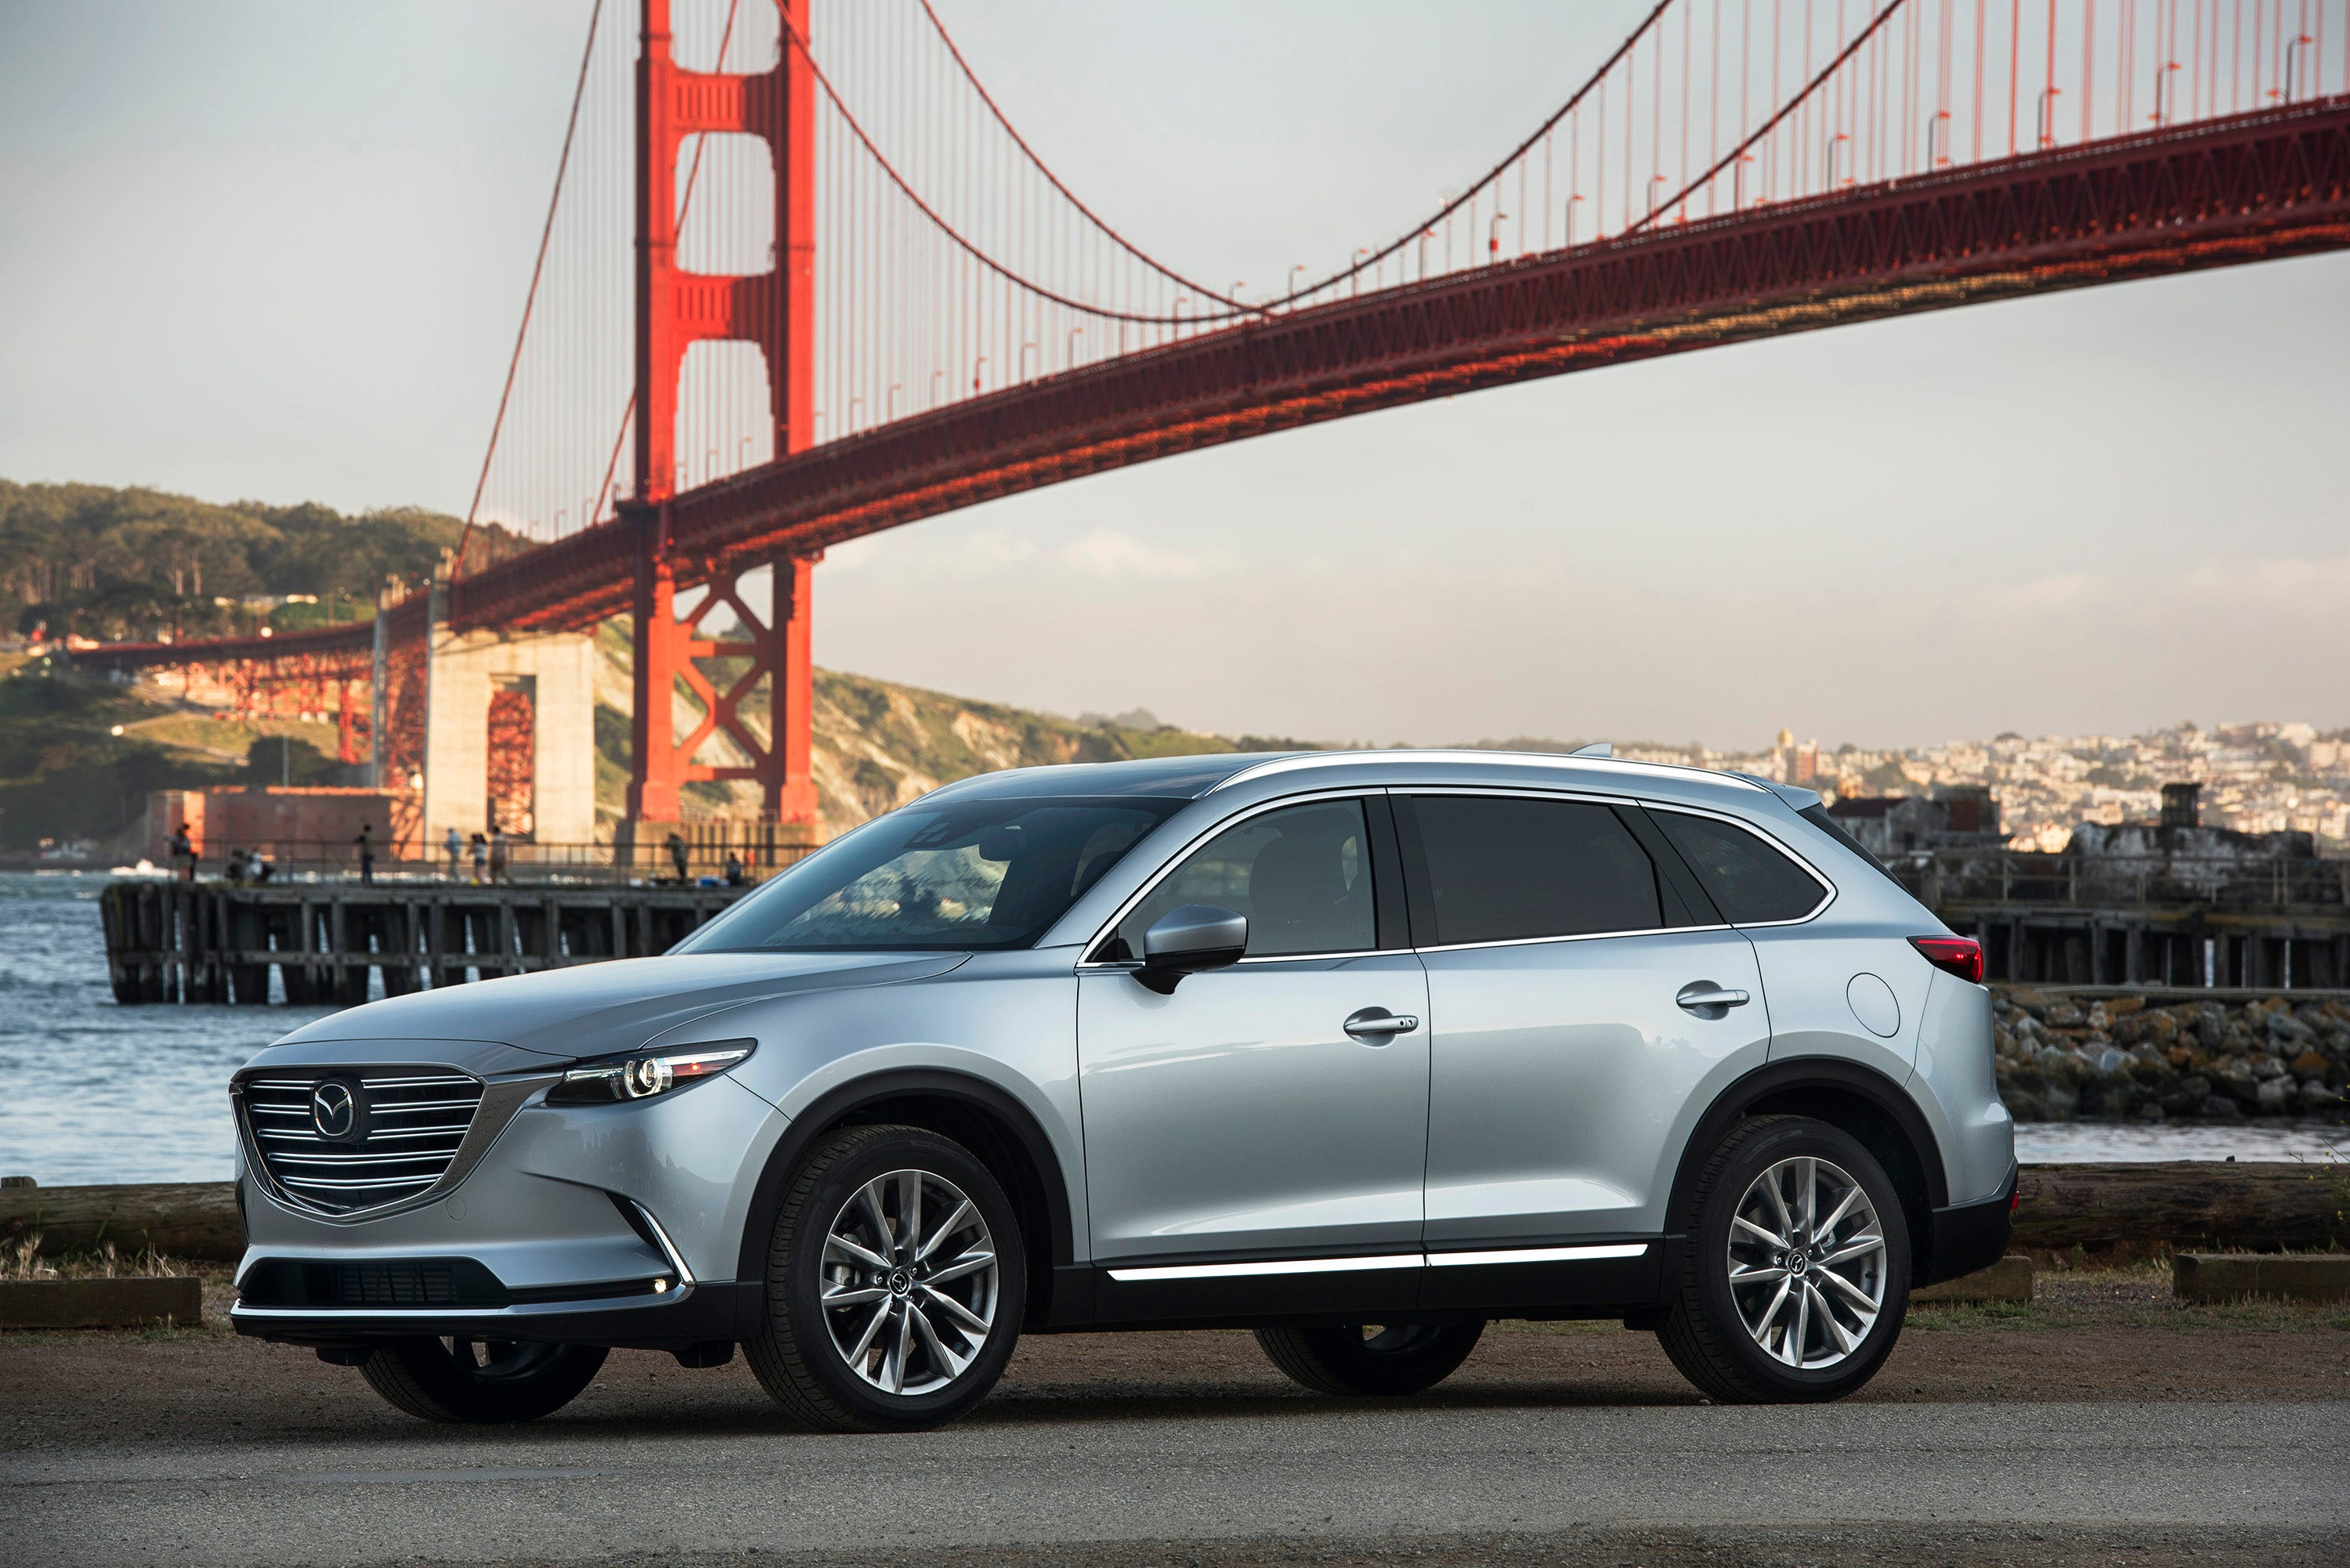 636057770360945711 2016 Mazda CX 9 03?width=3200&height=1680&fit=crop review quality woes let sporty mazda cx 9 down